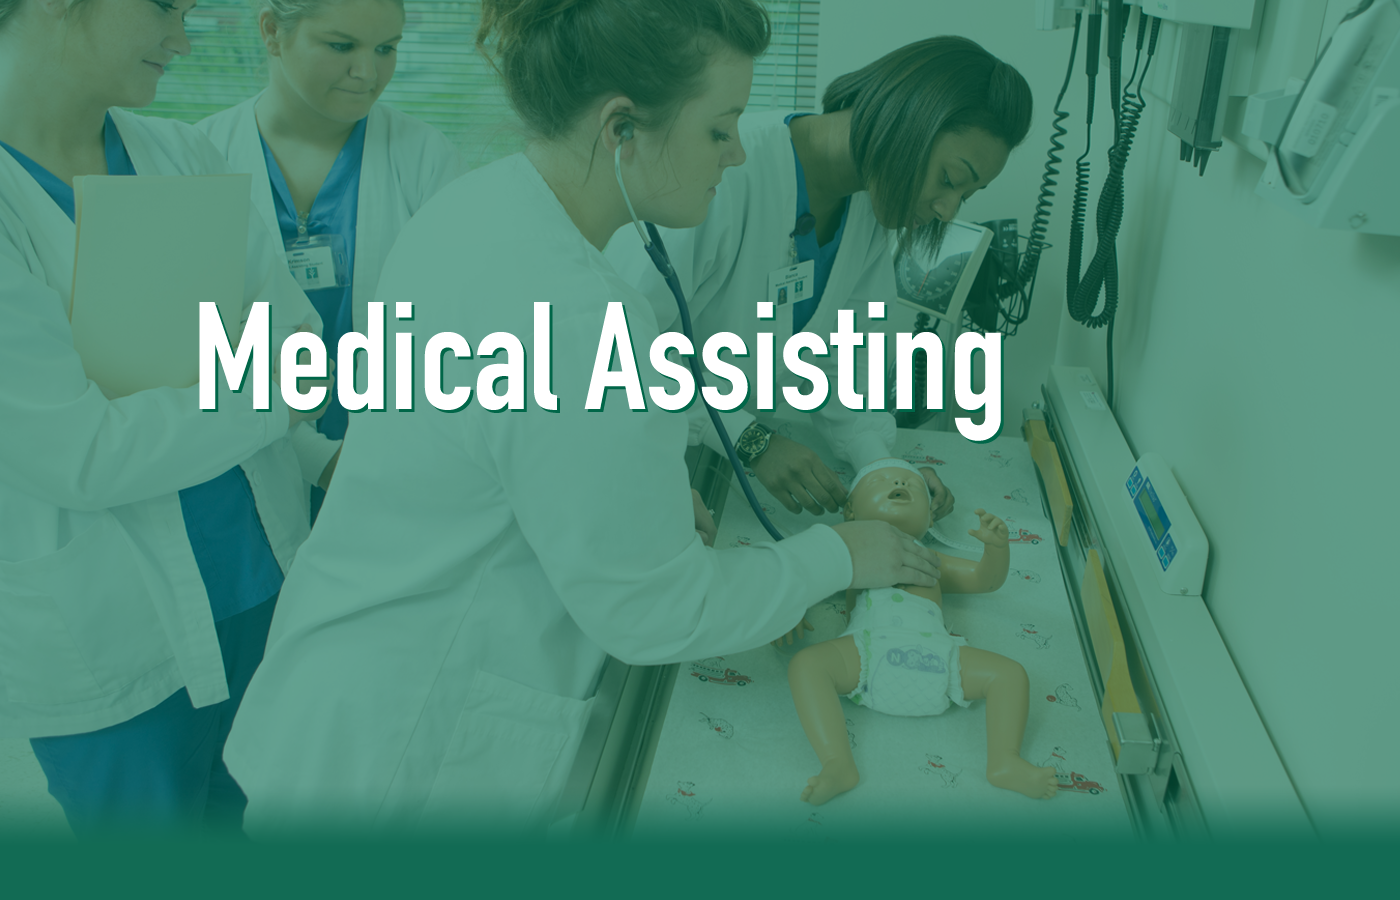 INTERESTED IN A CAREER IN MEDICAL ASSISTING?